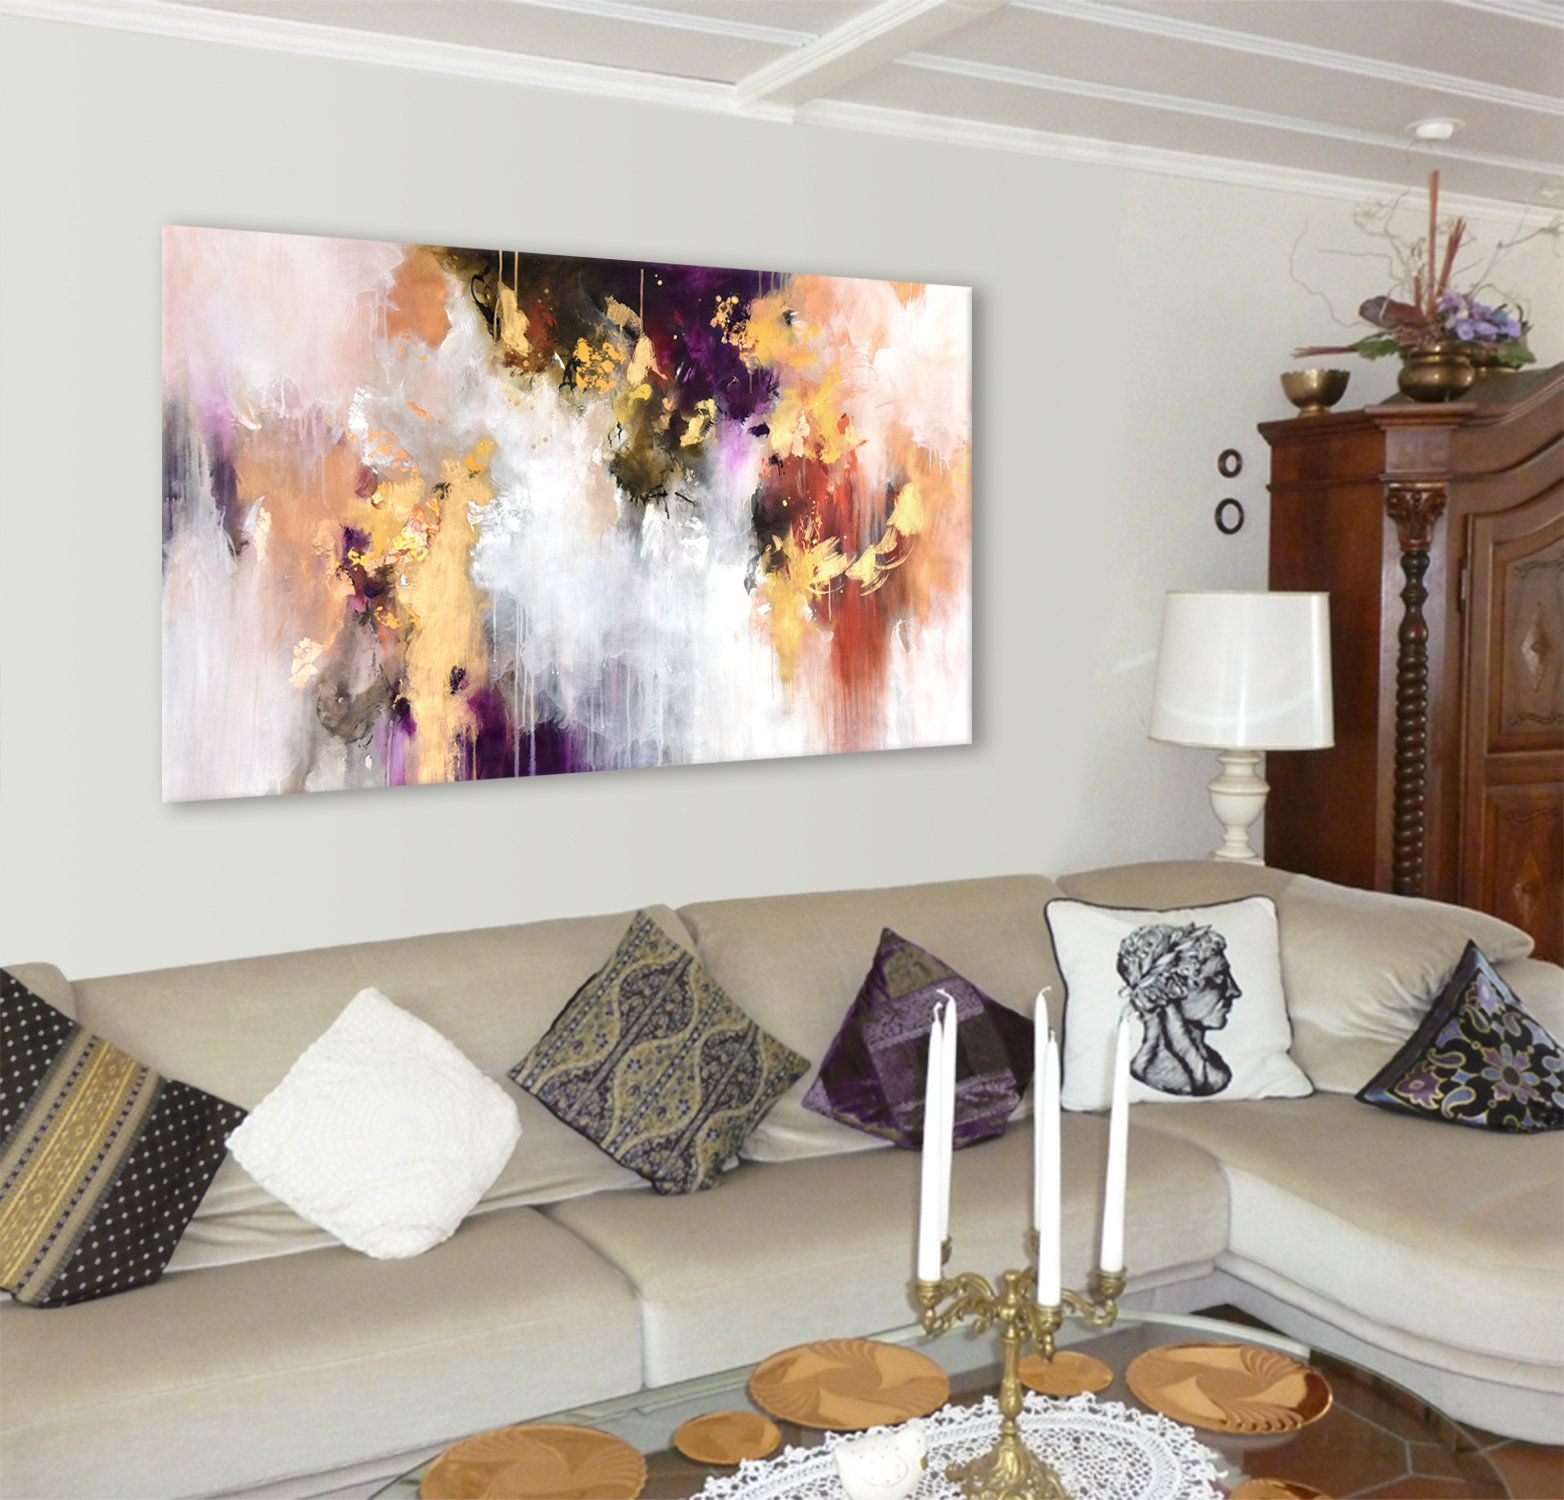 Extra Large Original Abstract Painting On Unstretched Canvas With Gold And Deep Plum 64x38 Oversize 162 X 98 Cm Metallic Artwork I 2020 Med Billeder